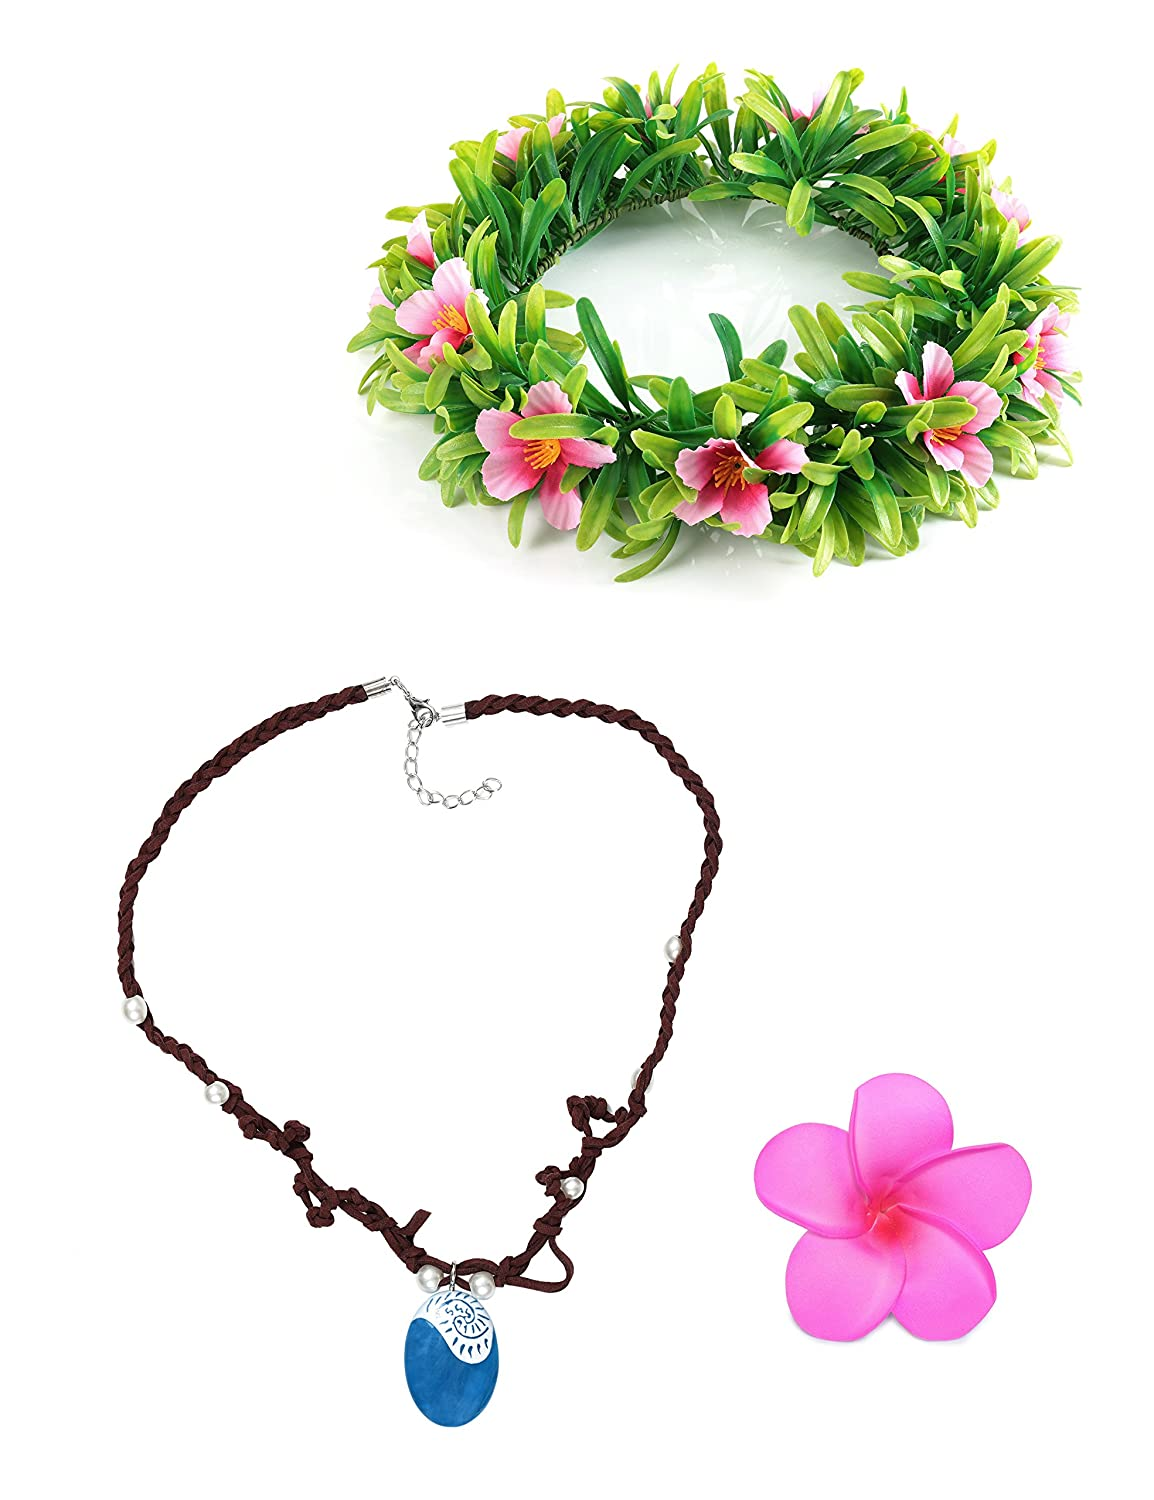 Muababy Girls Moana Necklace with Hawaii Flowers Garland (Necklace with Headband for Adult) necklace-M